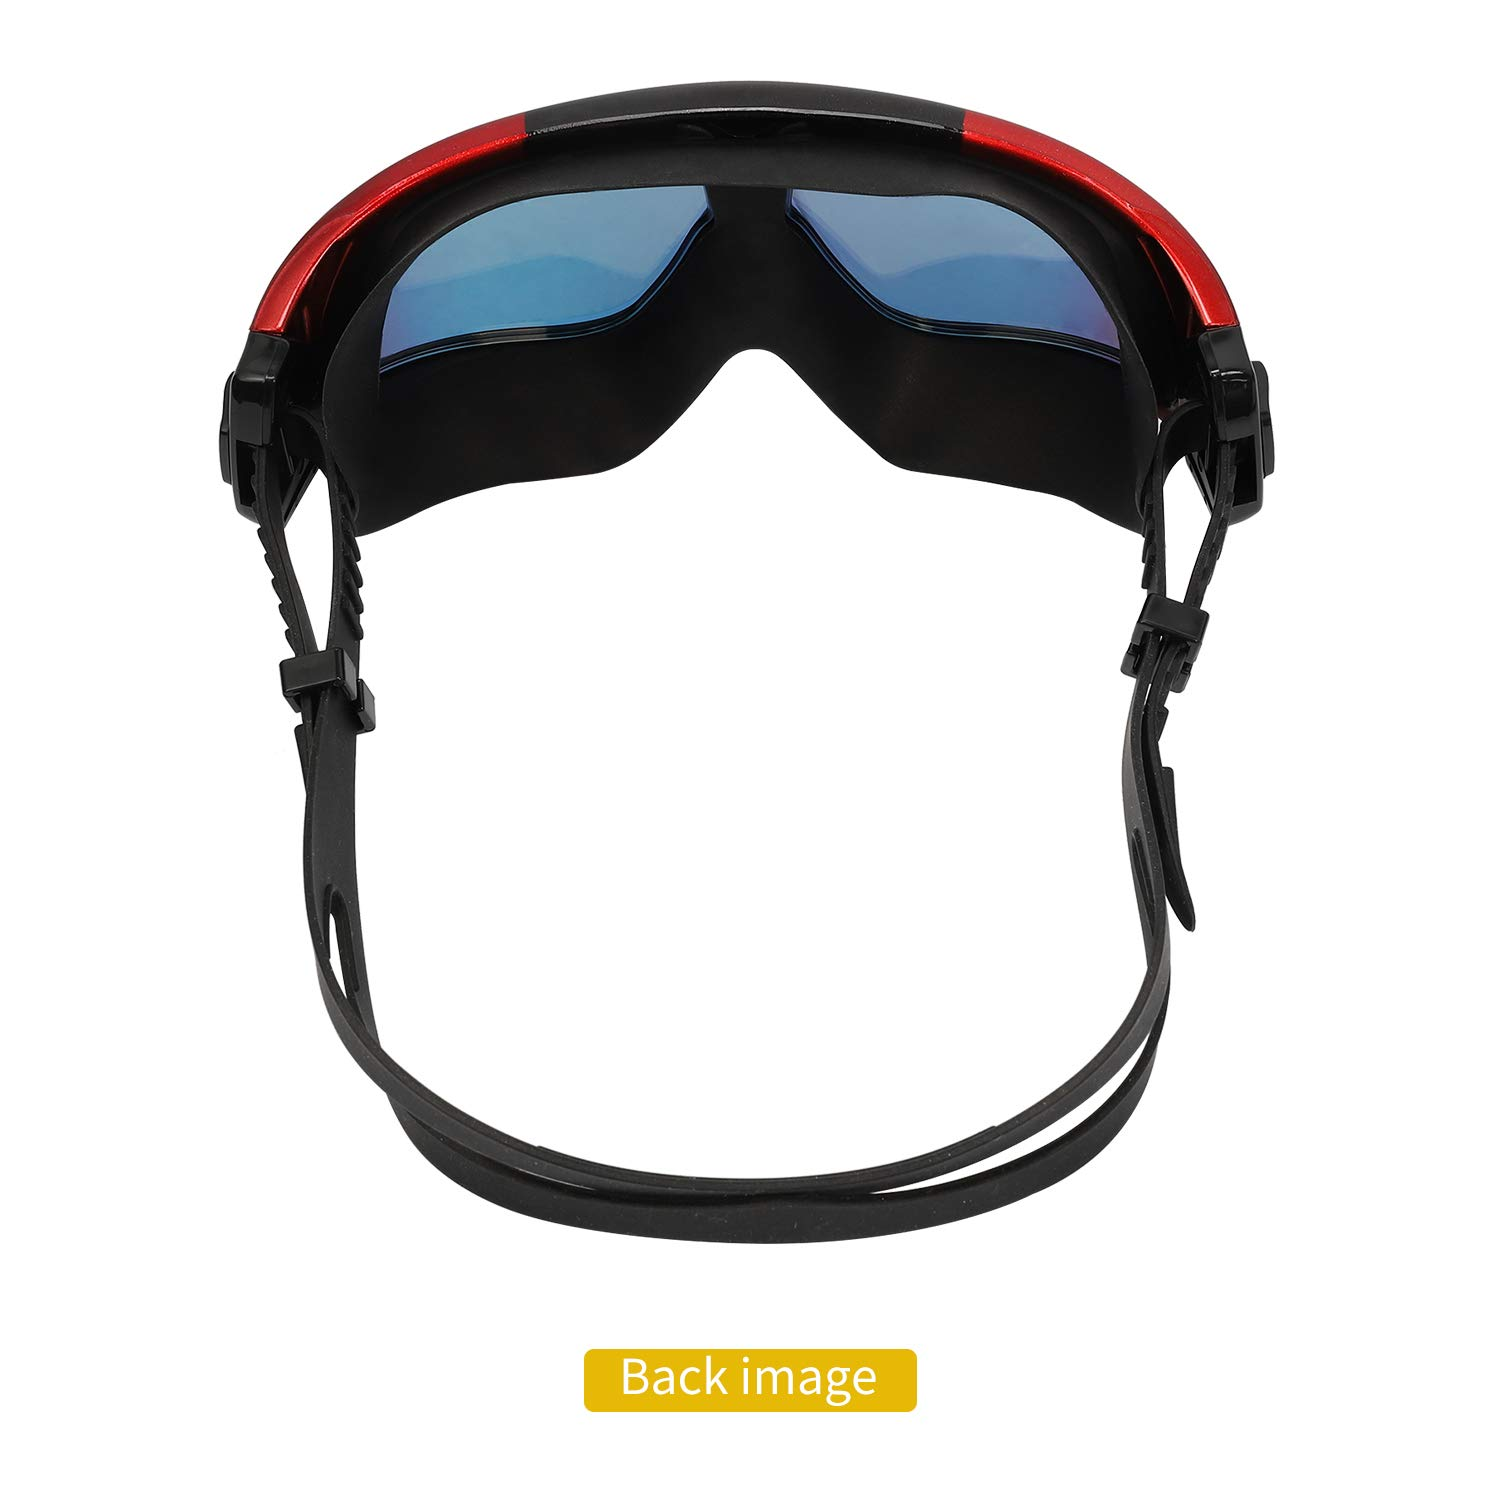 IOUTDOOR Swimming Goggles Large Frame Anti Fog No Leaking, Sports Goggles UV Protection with 180 Degree Vision and Soft Silicone Nose Bridge, Swimming Glass for Adult Youth Men Women (Black Red)